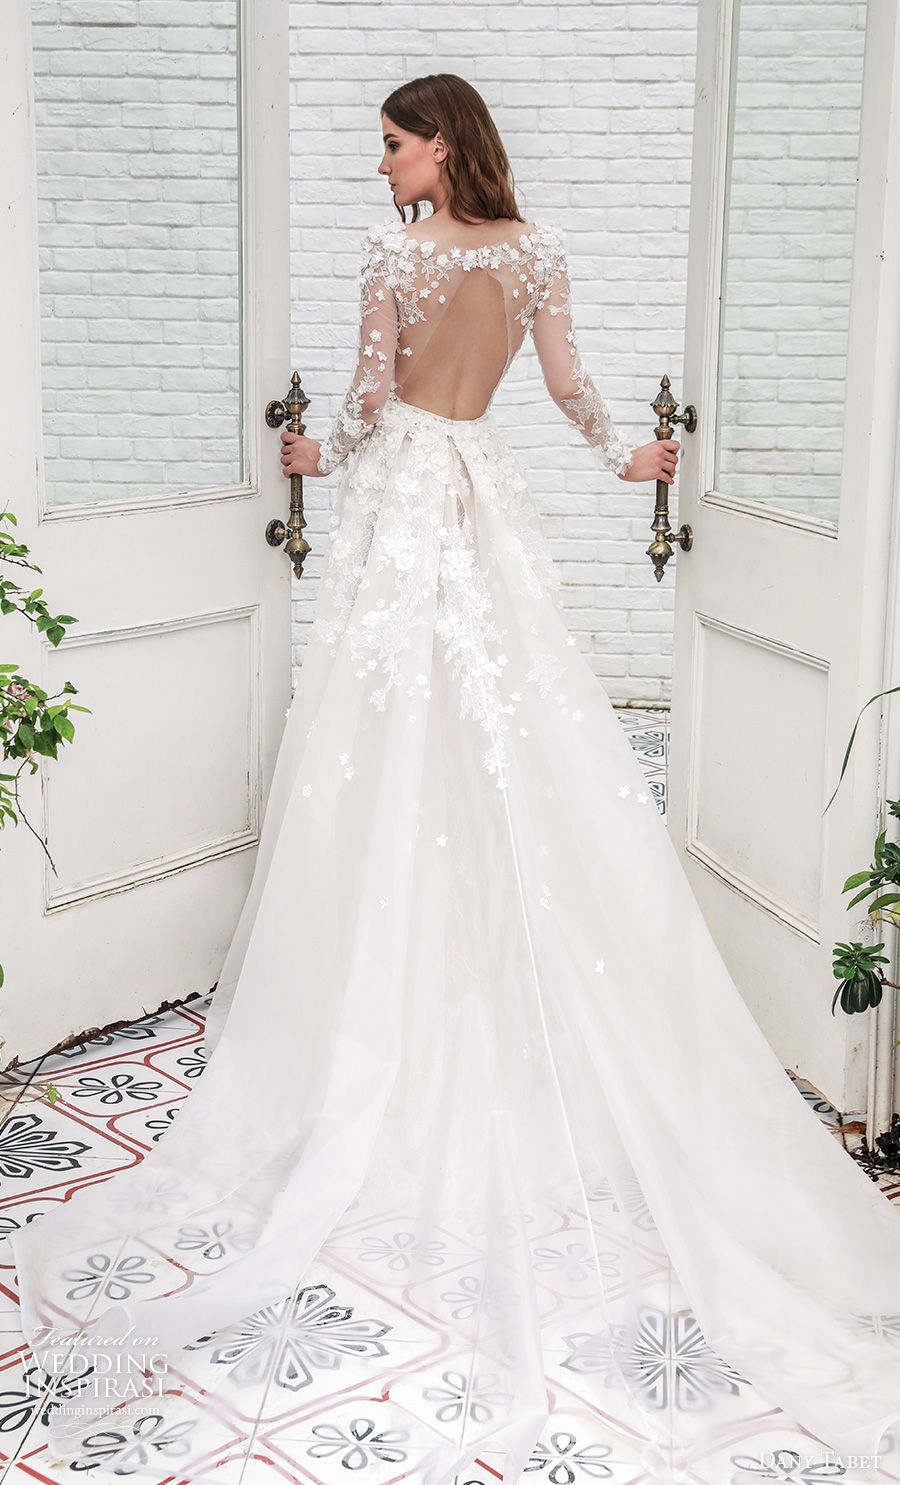 dany tabet 2021 emerge bridal long sleeves v neck heavily embellished bodice romantic fit and flare wedding dress keyhole back chapel train (2) bv